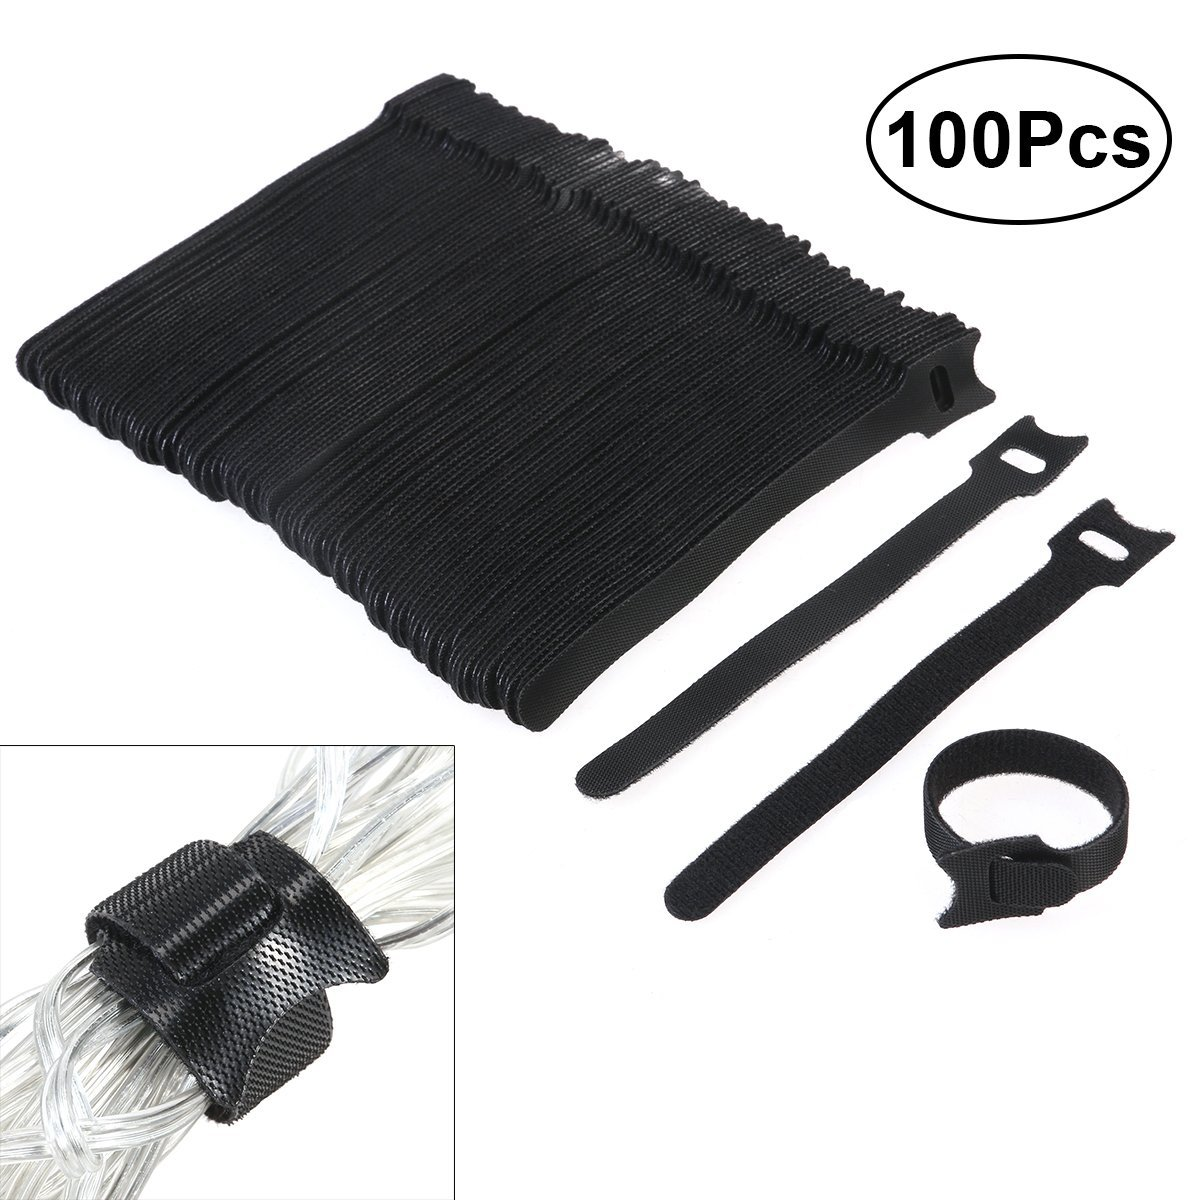 OUNONA 100pcs Multi-Purpose Cable Ties 6 Inch Fastening Cable Ties with Reusable Hook and Loop Strap Cable Ties for Organizer Fastening (Black)